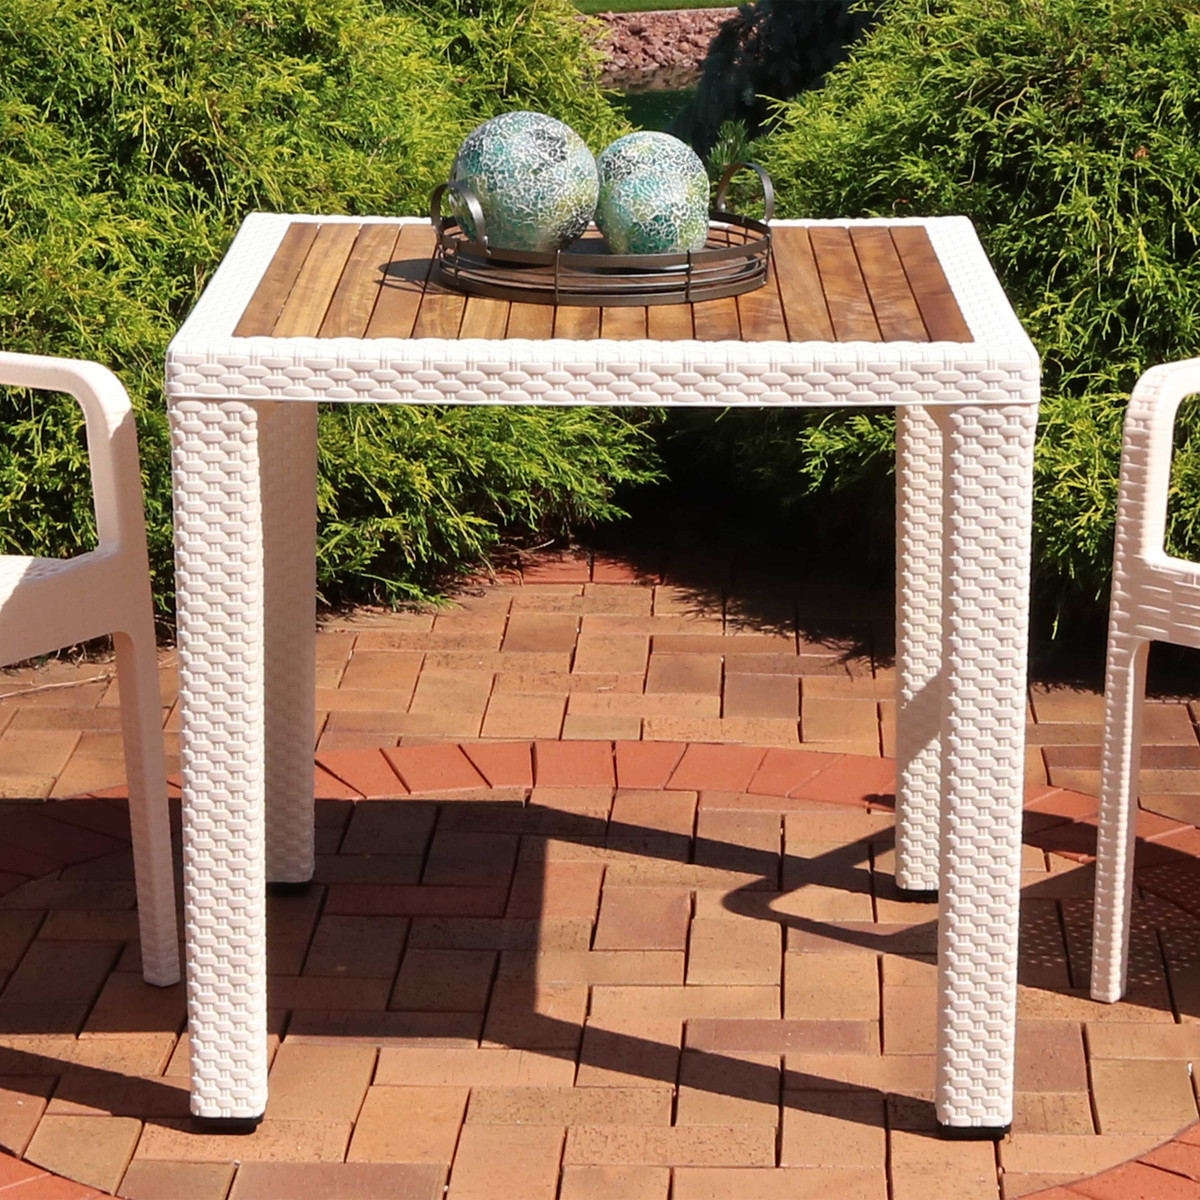 Sunnydaze All Weather Square Plastic Patio Dining Table With Faux Wicker Design Balcony Deck Dining Room Cream With Wood Color Top 32 Inch